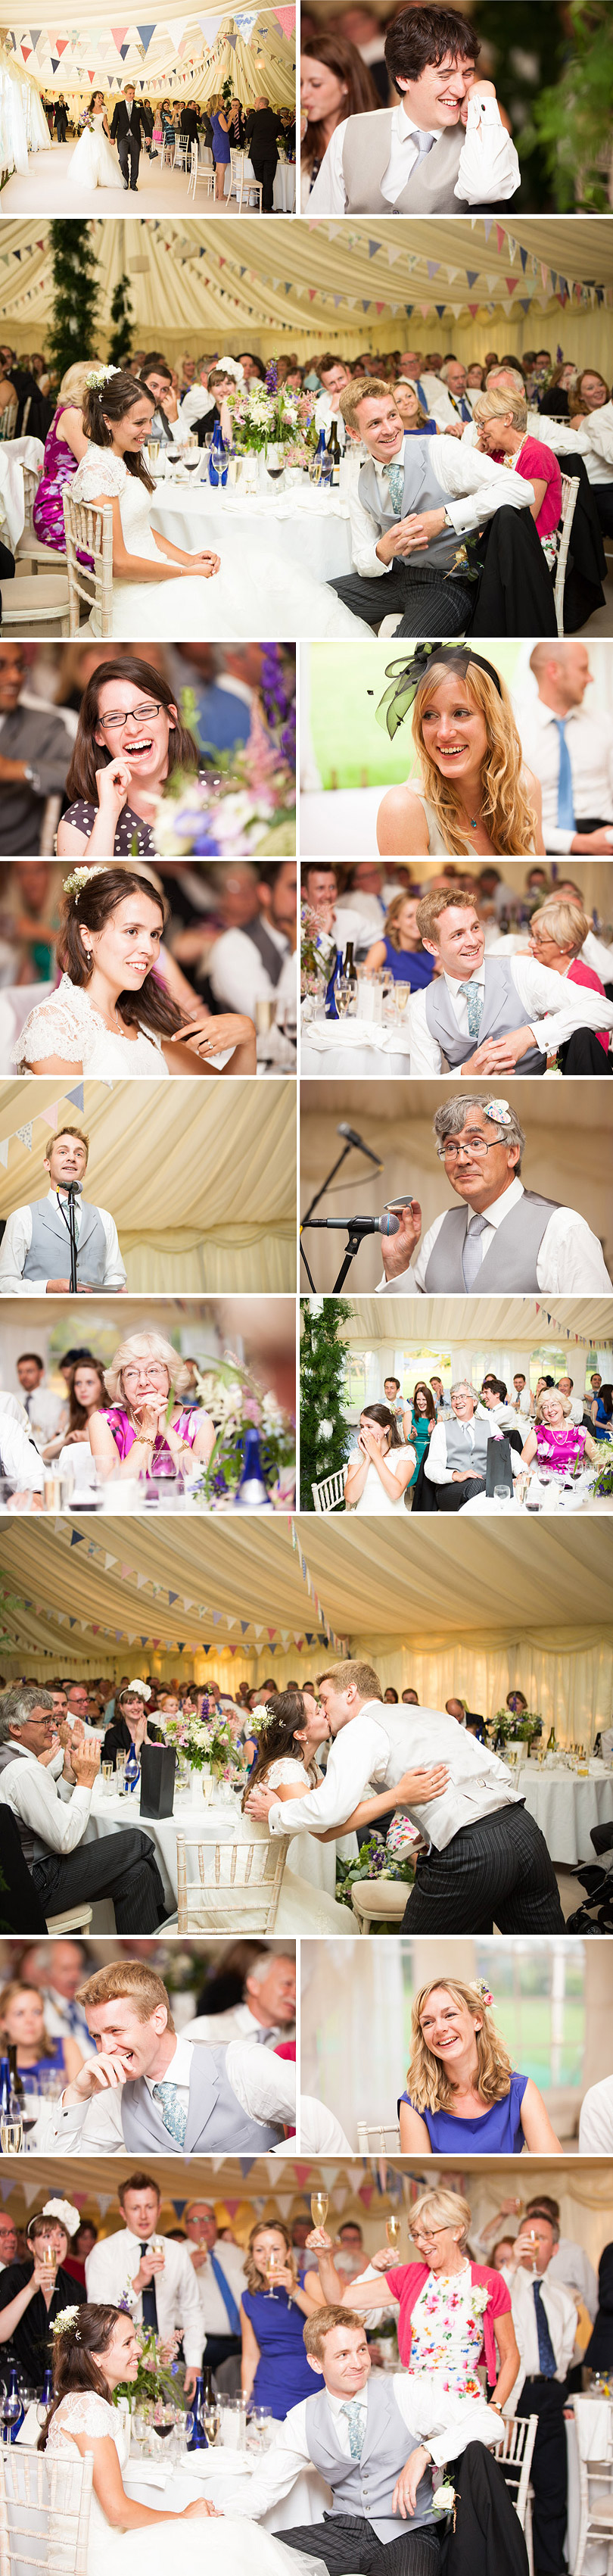 Emily&DaveS_Wales_16.jpg